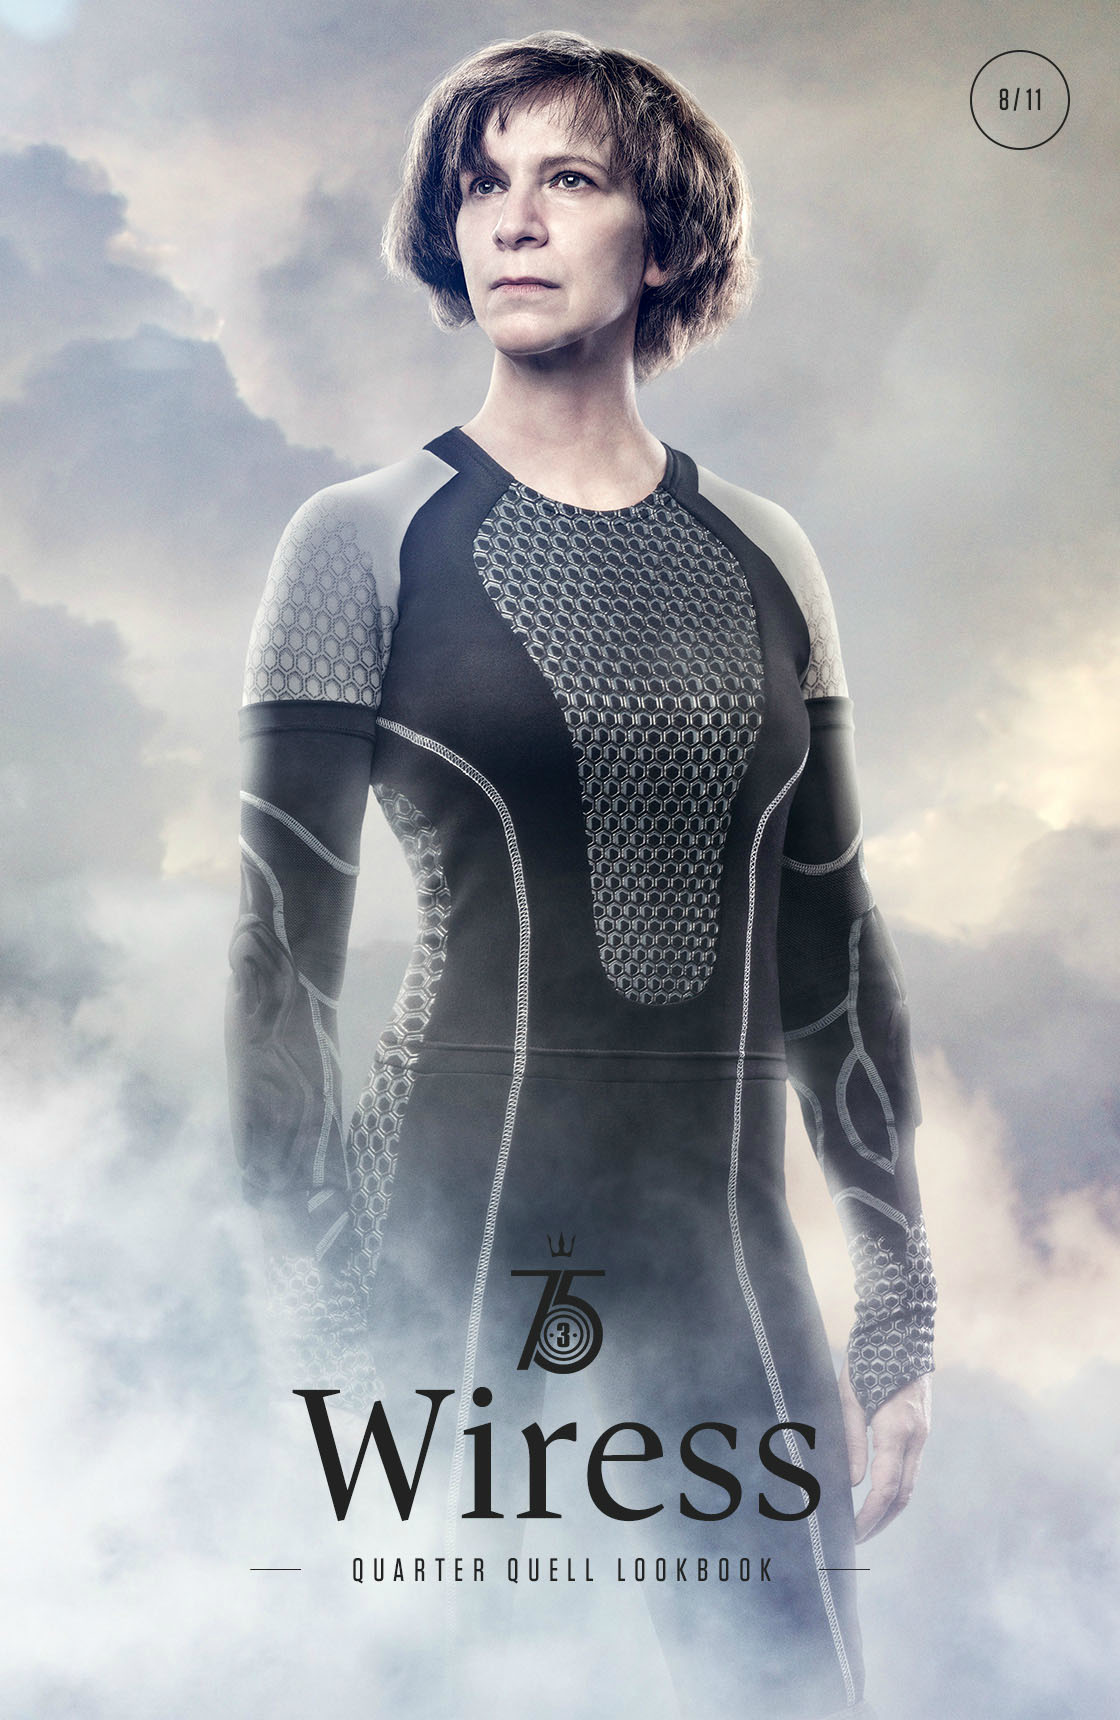 image - hunger-games-catching-fire-meet-652404-17-wiress | the